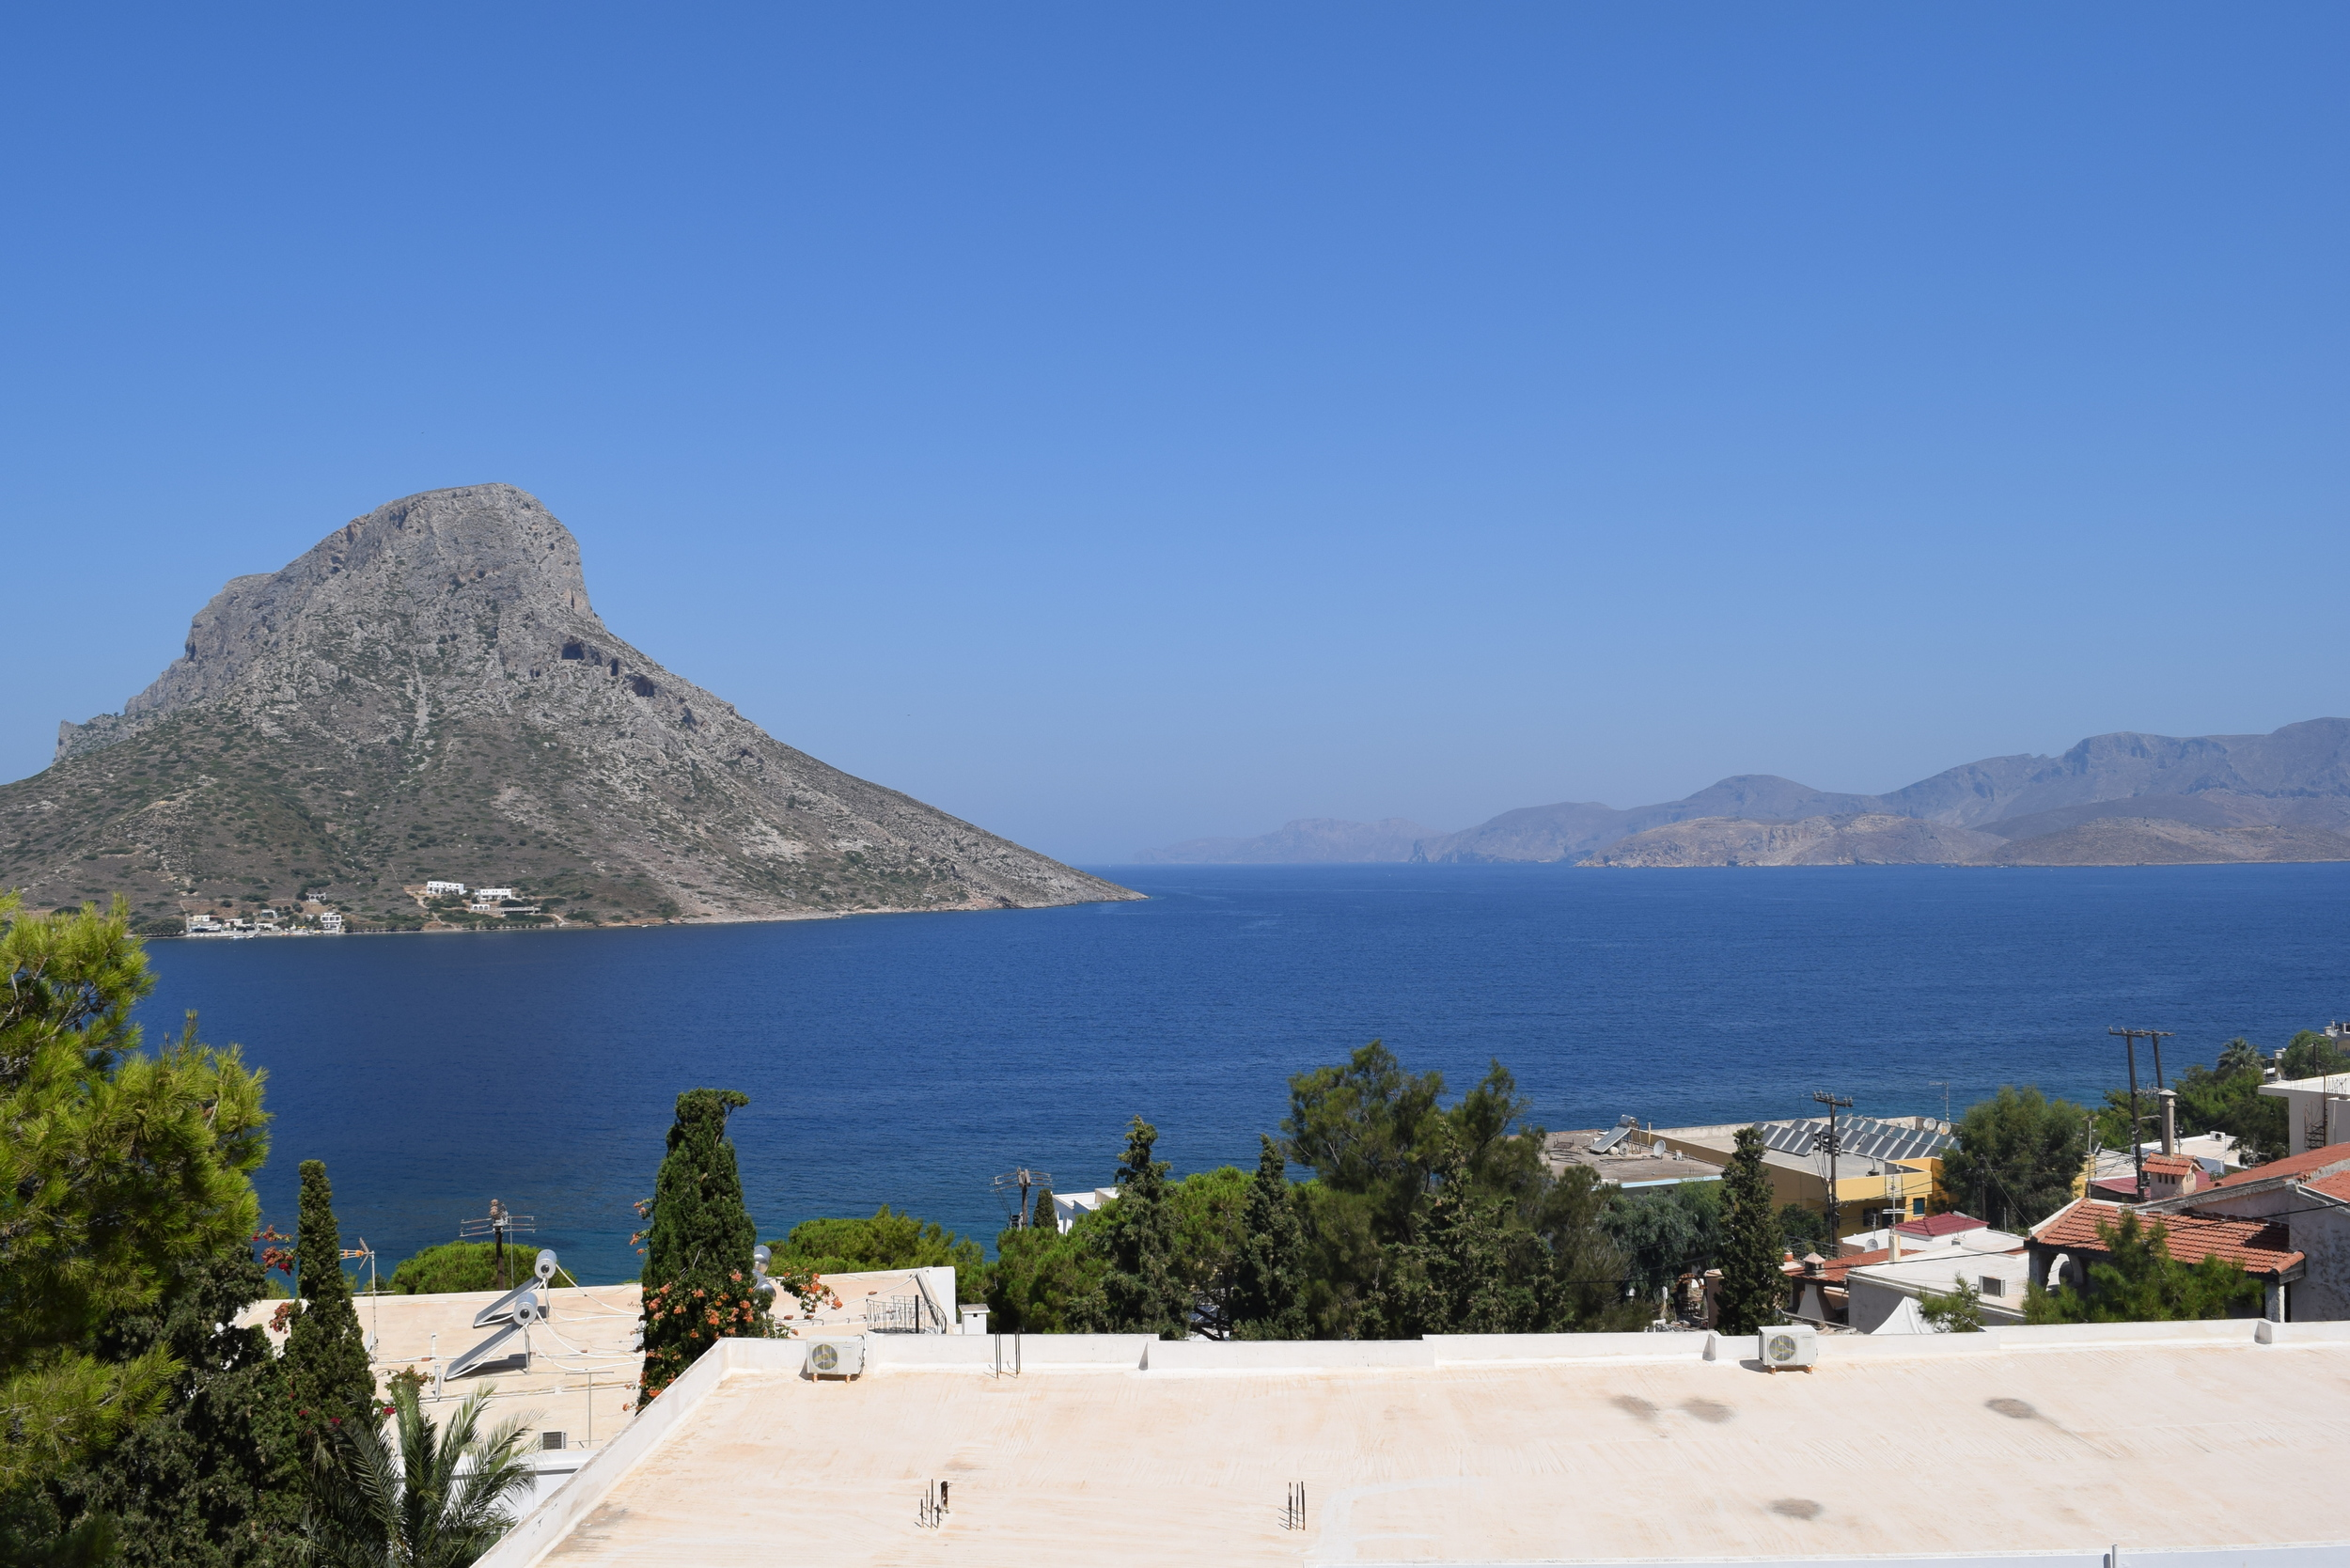 View from my room in Kalymnos